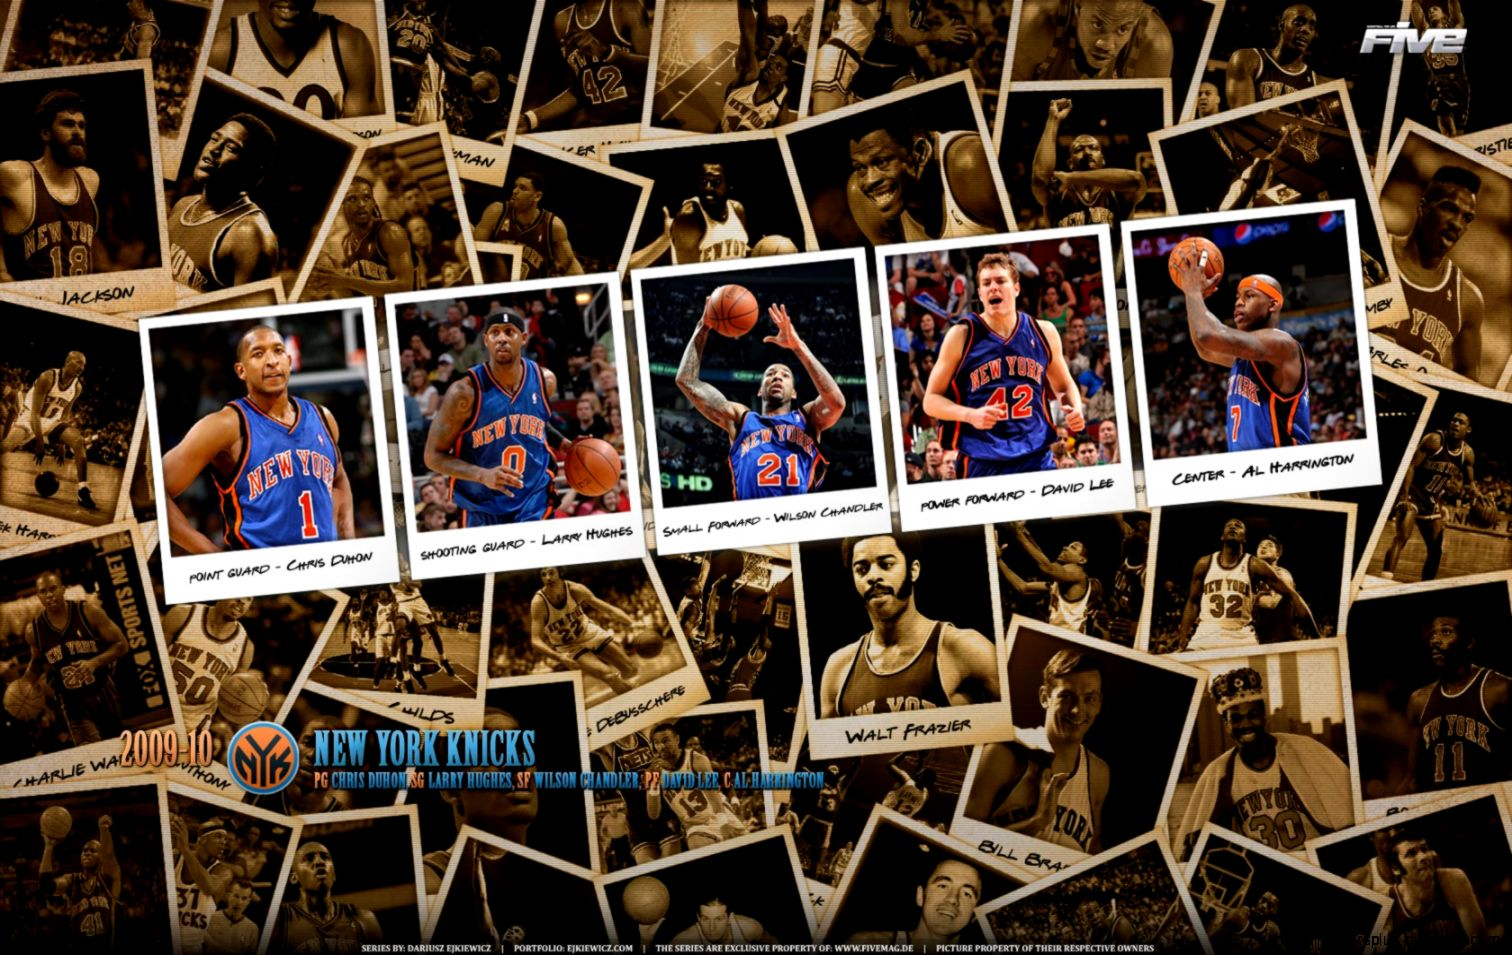 New York Knicks Team